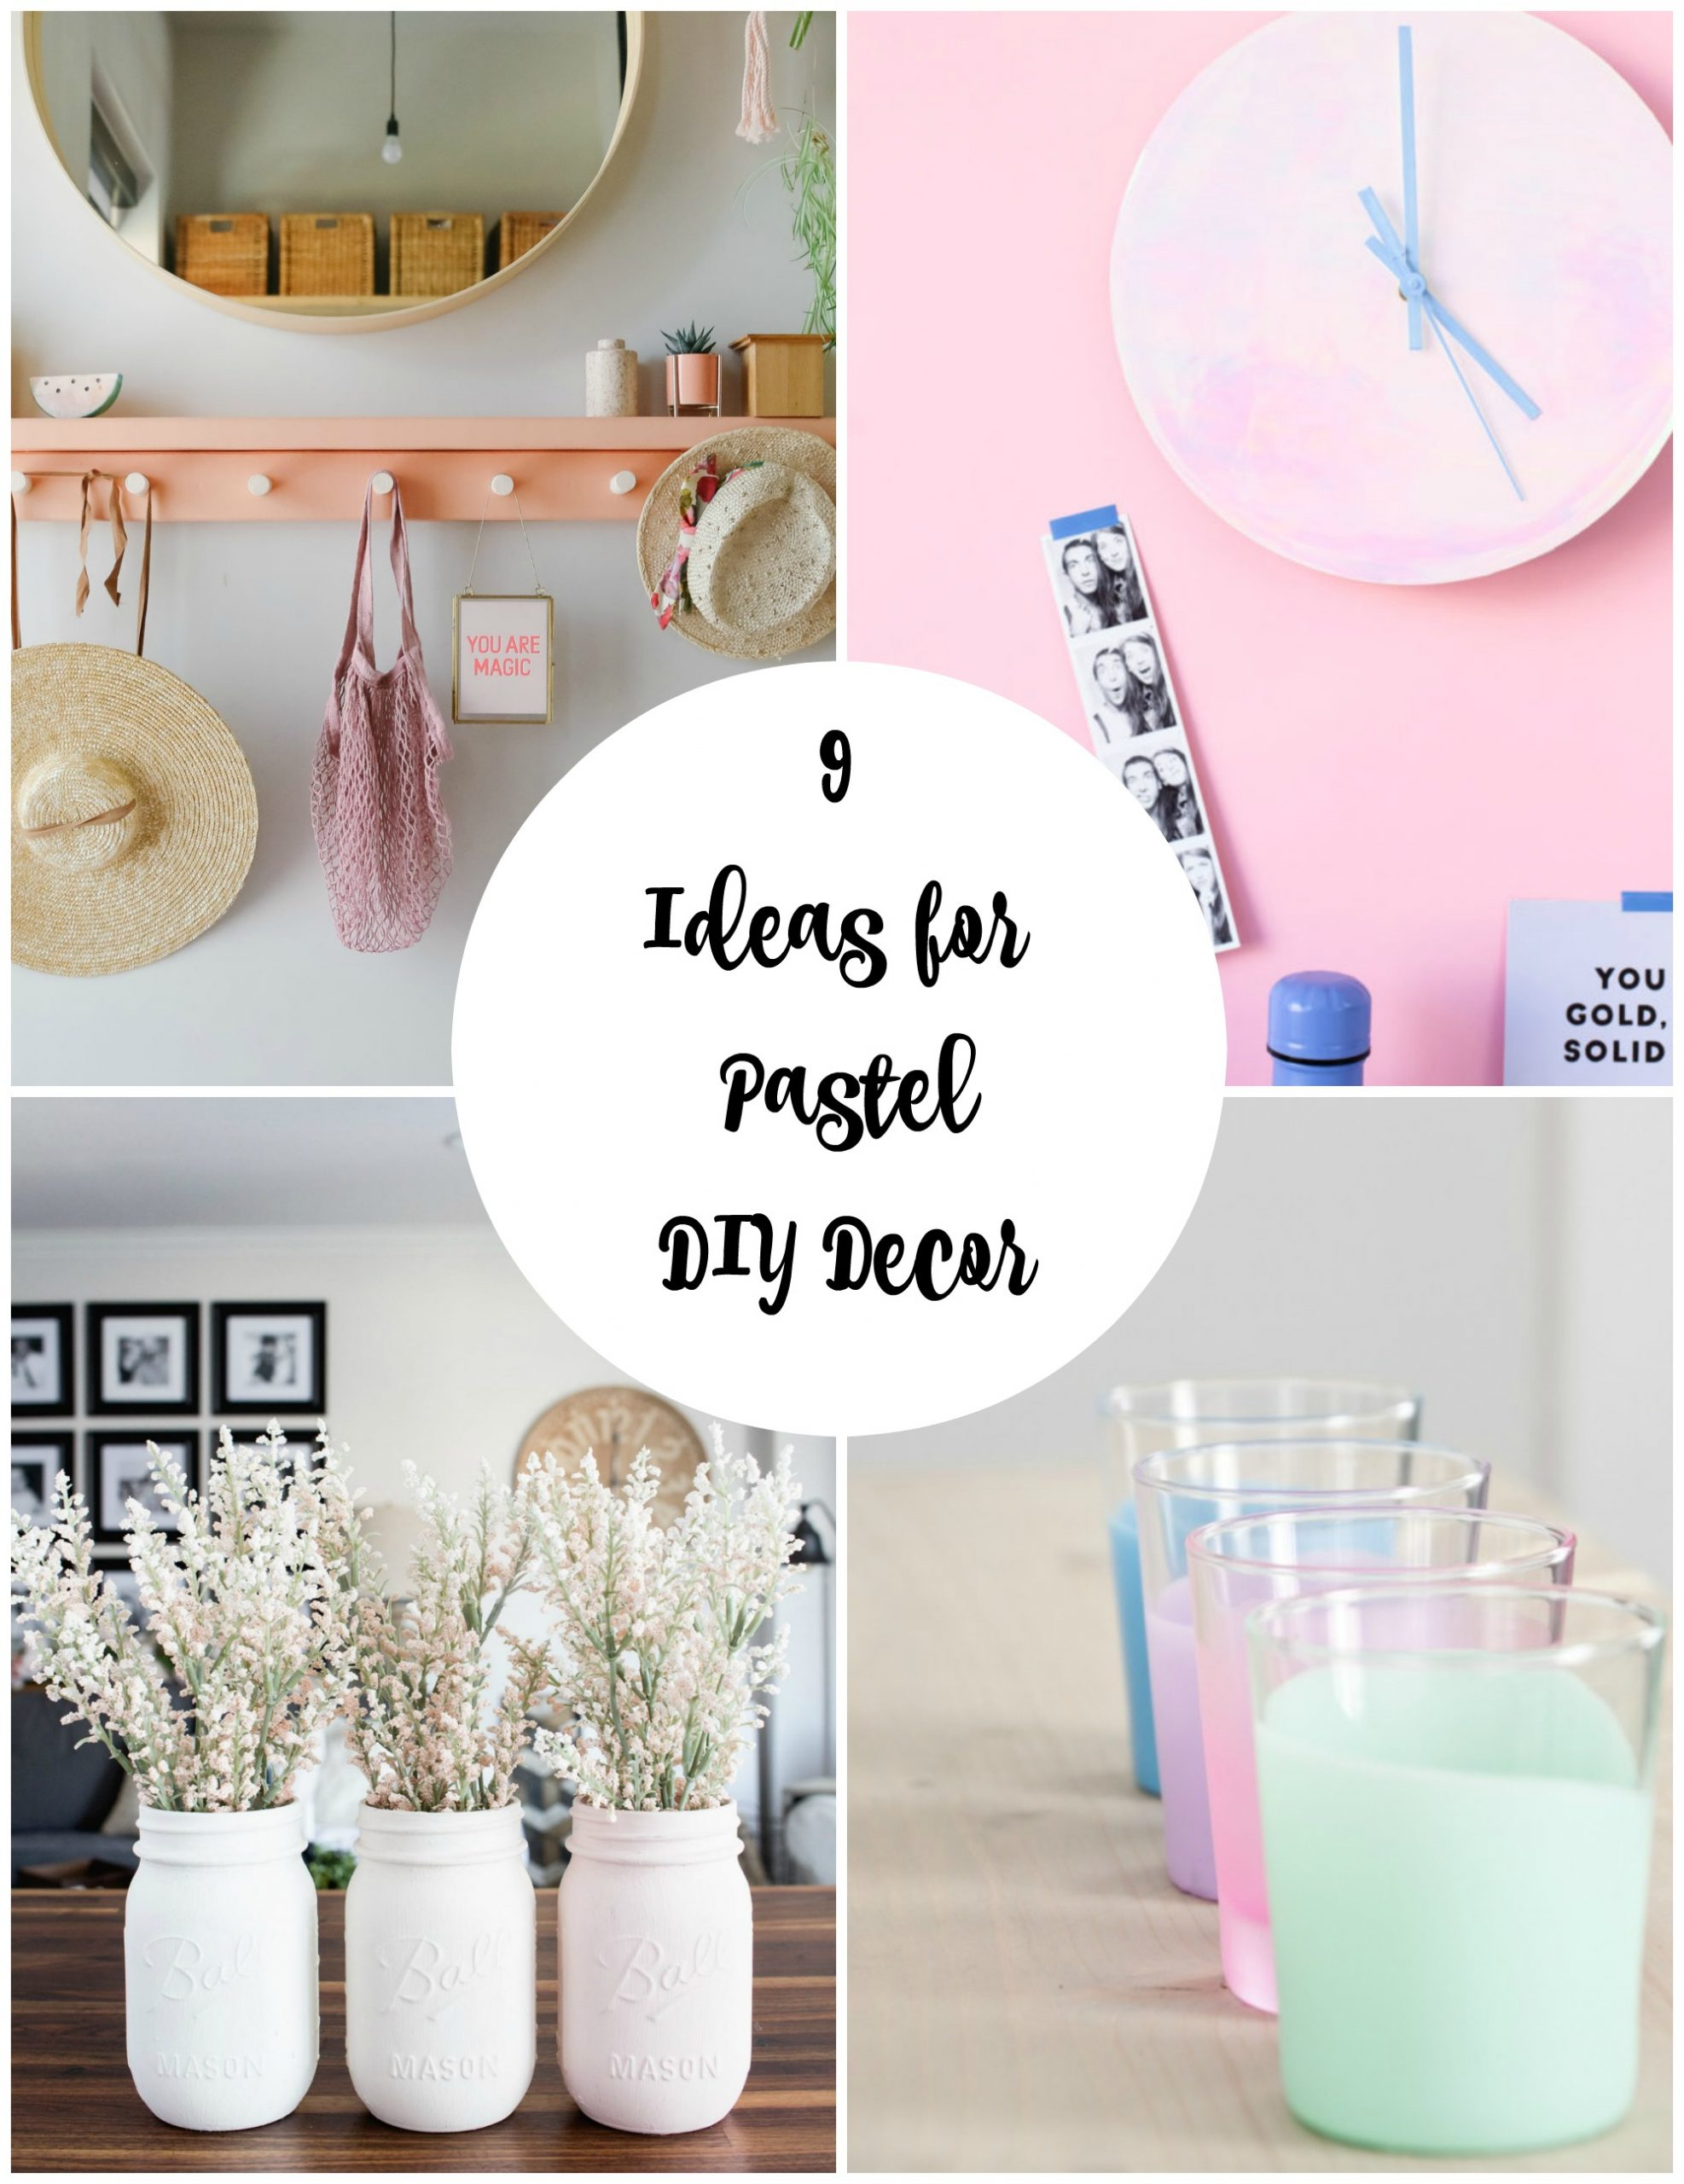 32 Now Ideas for Pastel DIY Decor   Make and Takes